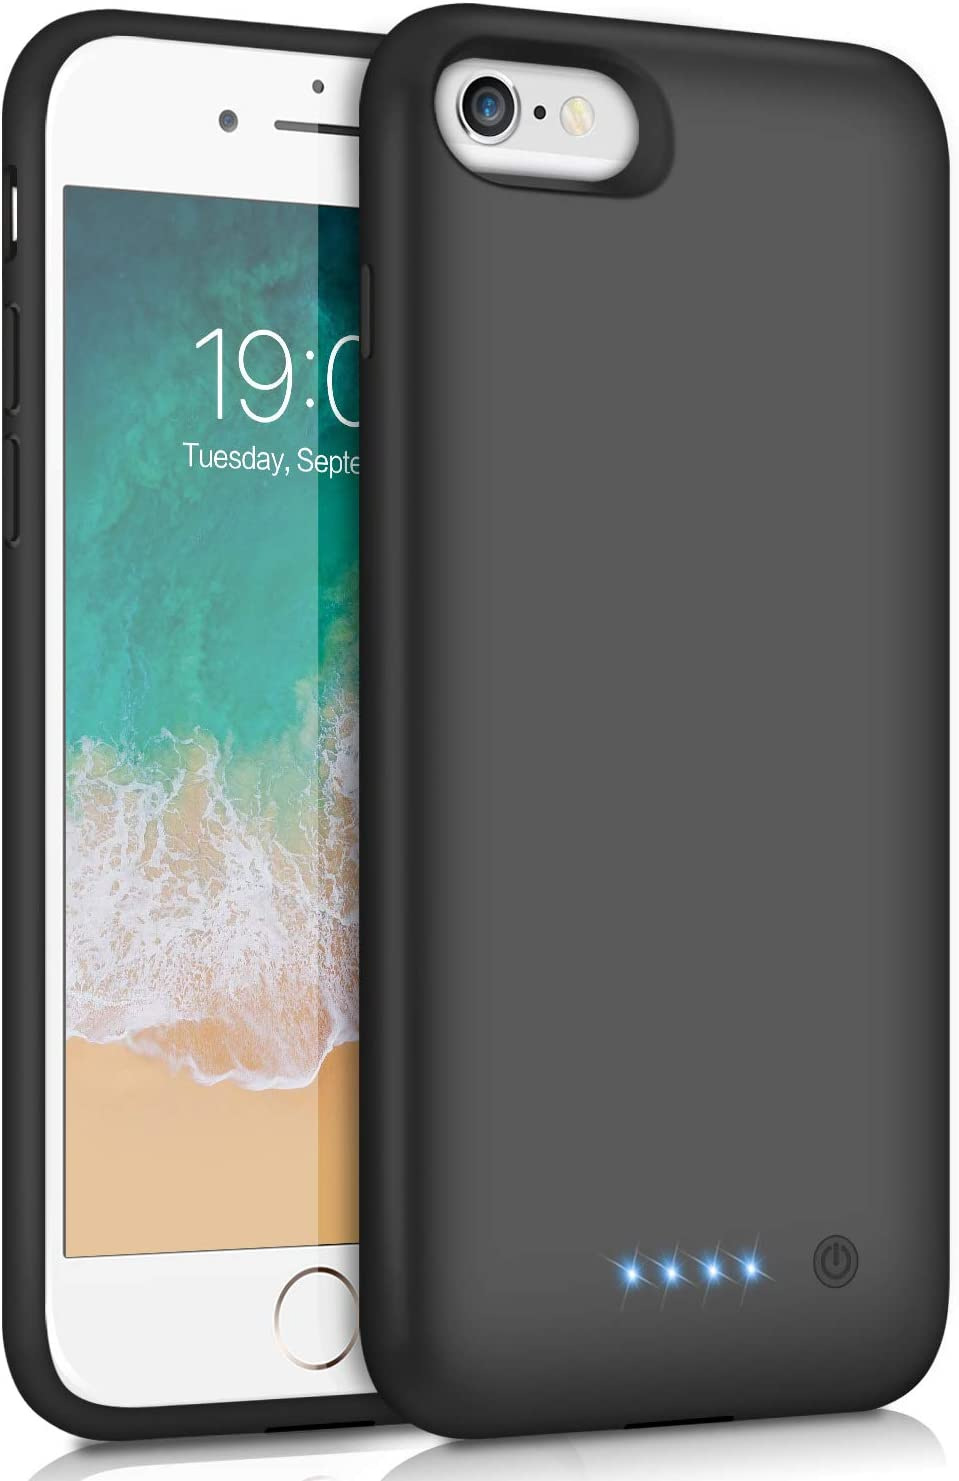 iPhone 6/6s/7/8 Battery Case Upgraded [6000mAh] Protective Portable Charging Case Rechargeable Extended Battery Pack for Apple iPhone 6/6s/7/8 (4.7') - Black